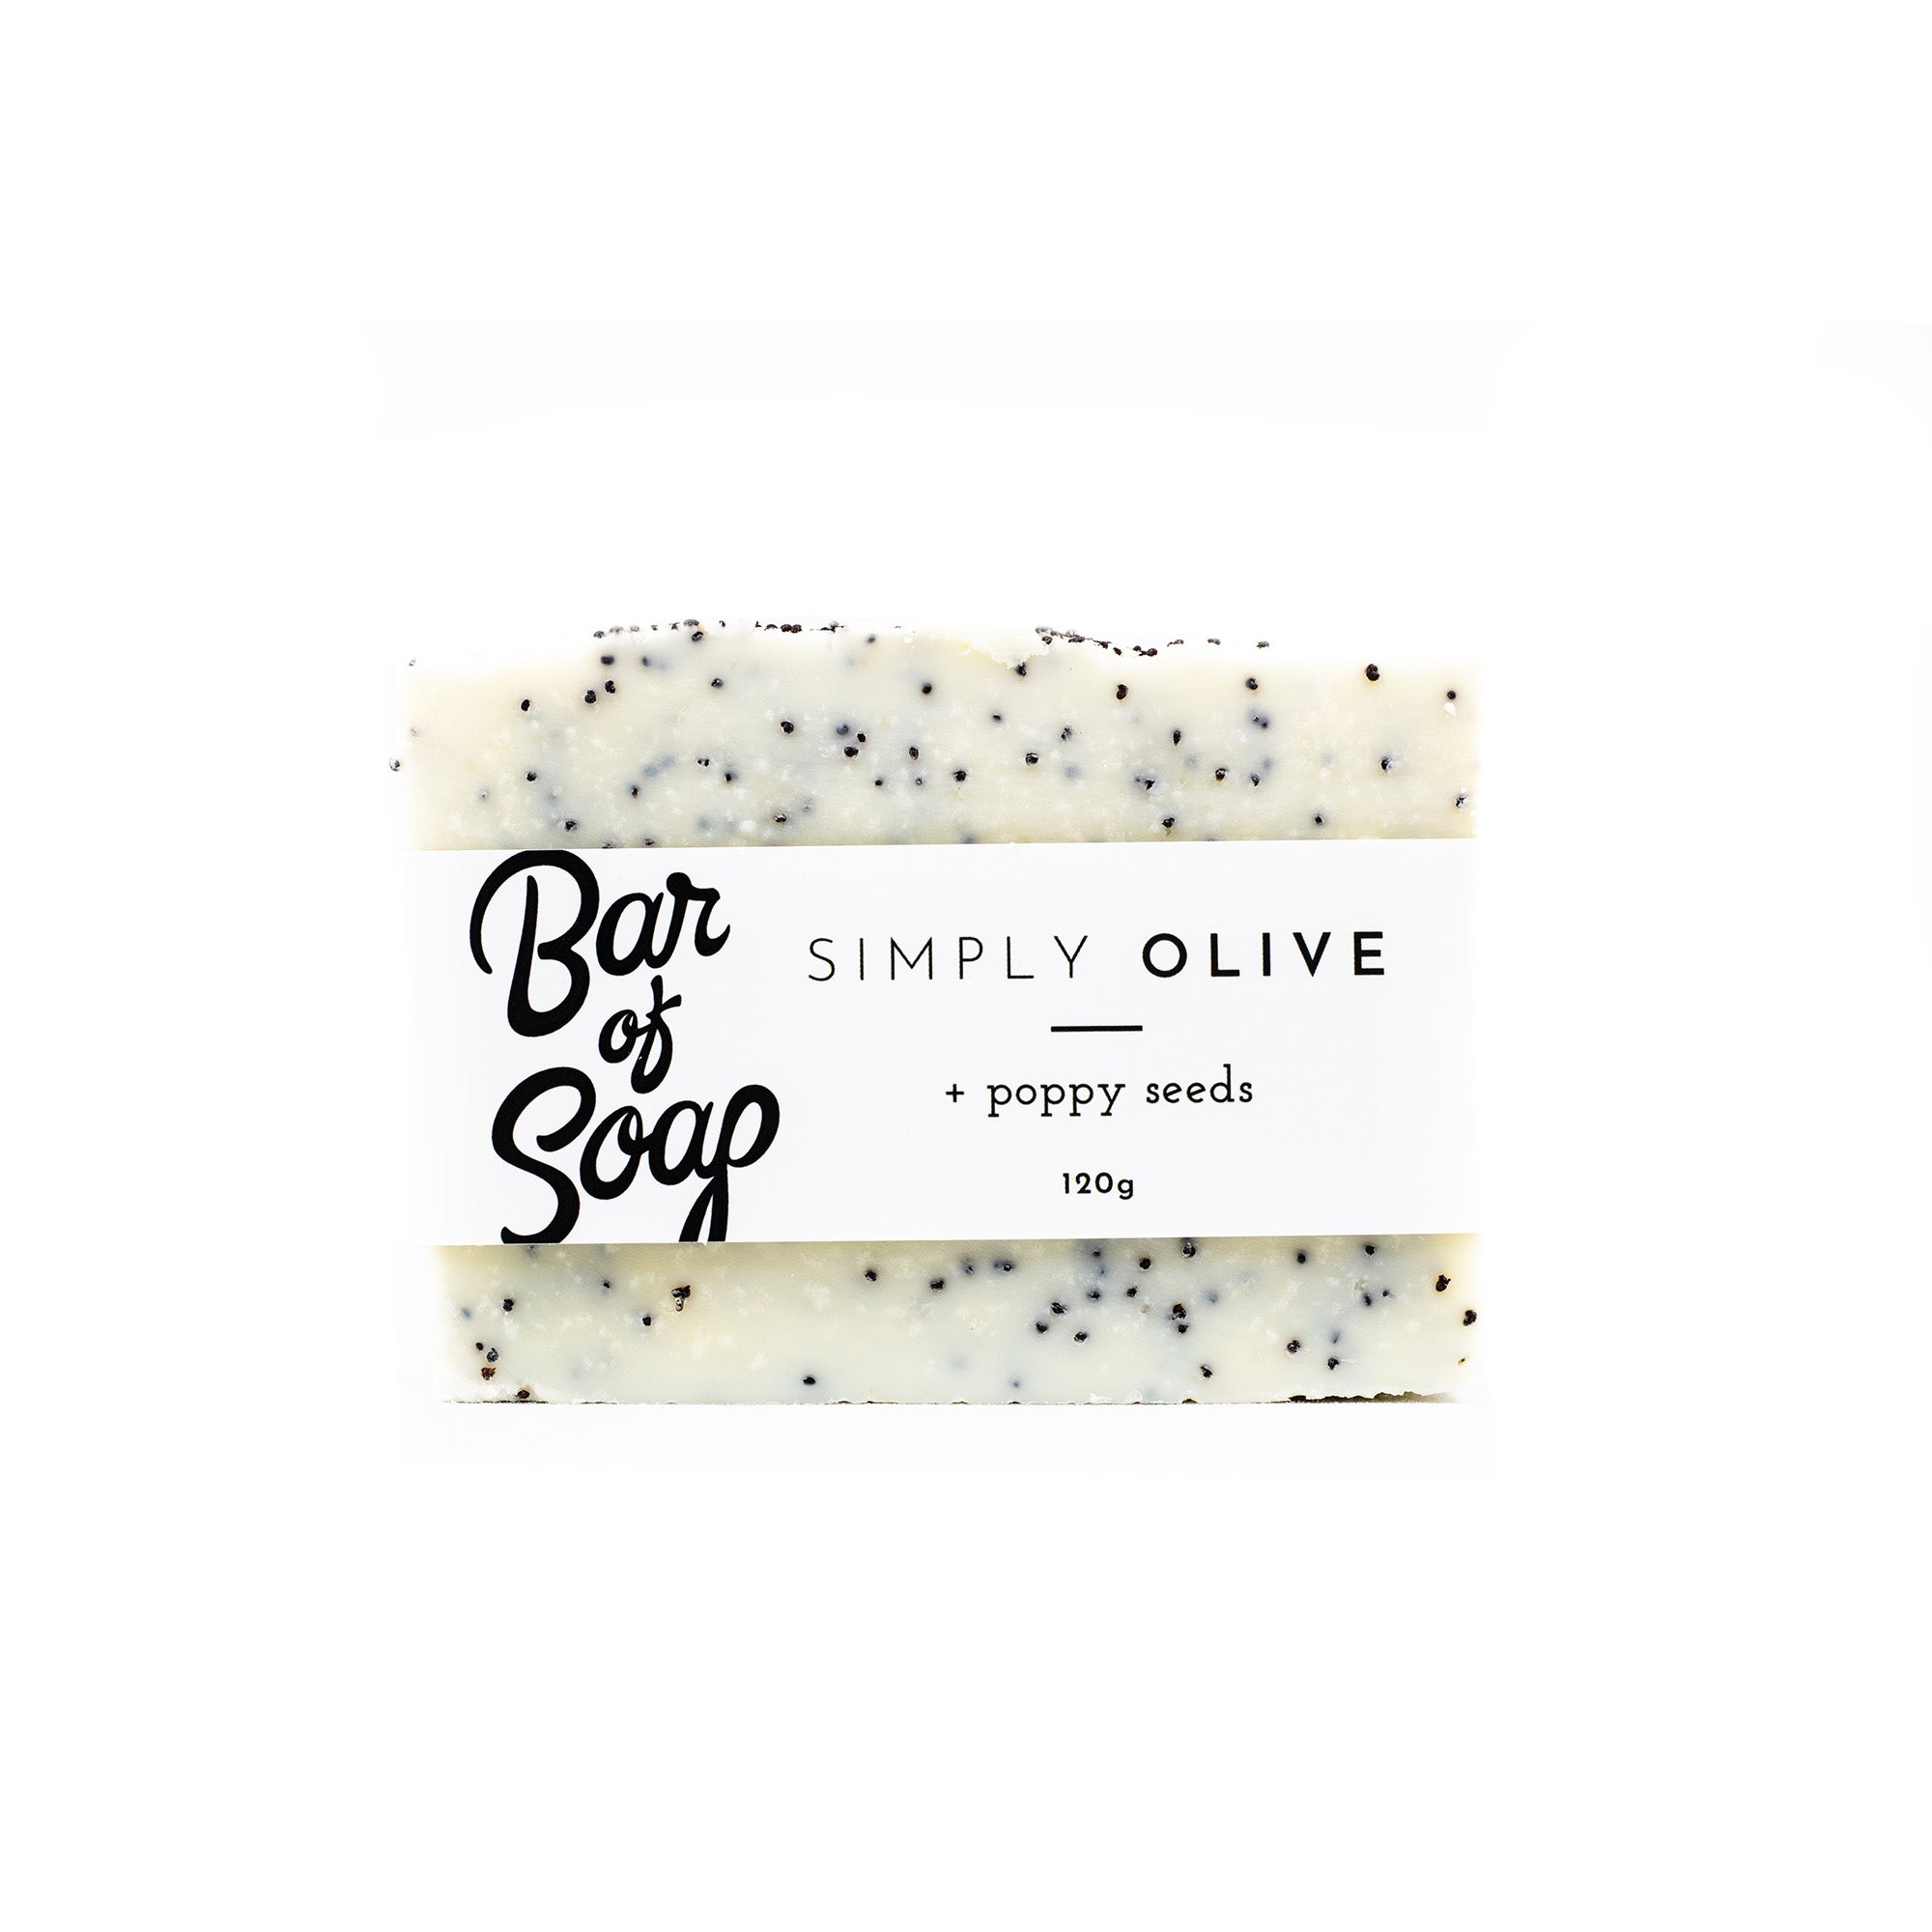 A simple and white pure olive oil bar of soap with poppy seeds mixed throughout. The bar is wrapped with a Simply Olive + Poppy Seeds of Soap label.